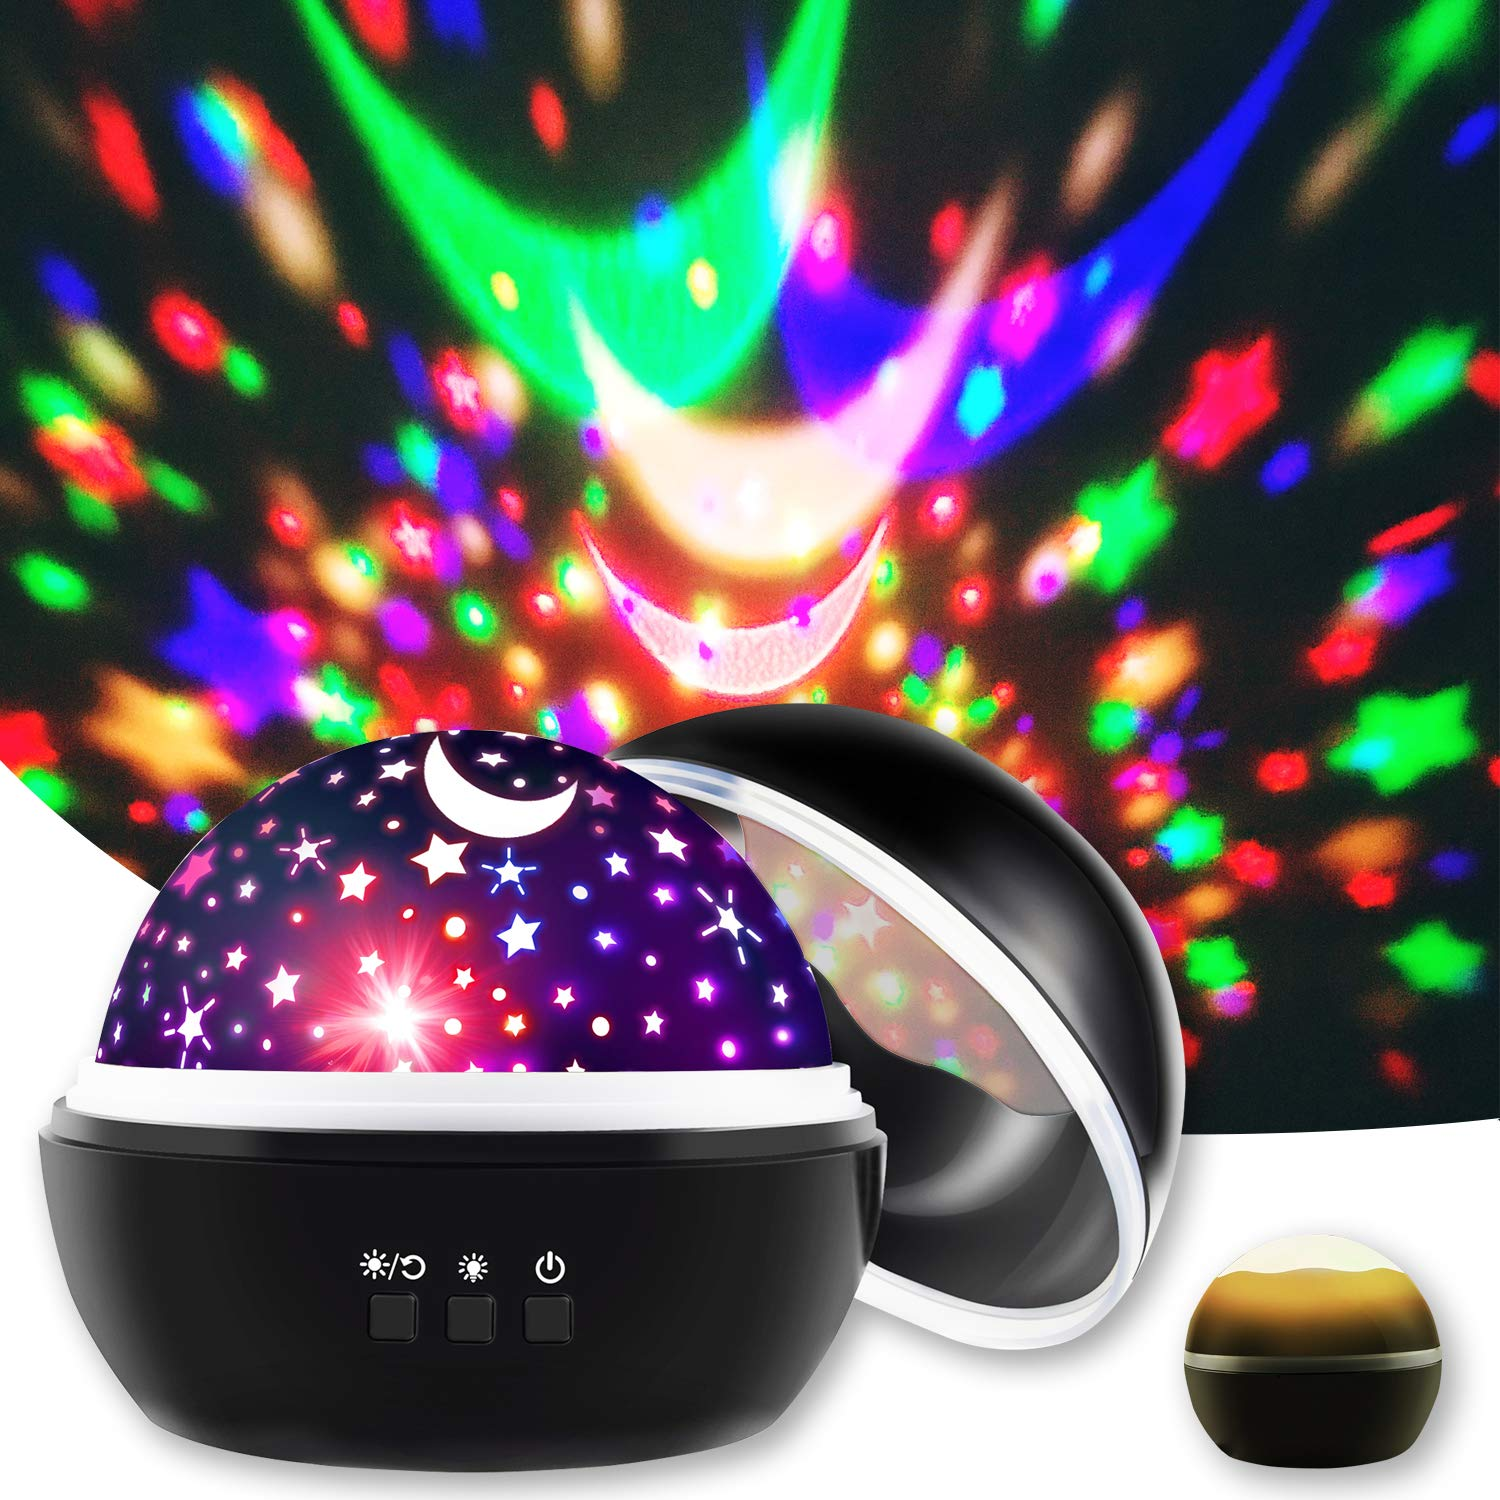 16 Modes Soothing Star Projector for Bedroom, Fall Asleep Faster Solution for Kids and Adults at Bedtime, Sensory Toys for 3 4 5 6 7 8 9 Year Old Boys Girls